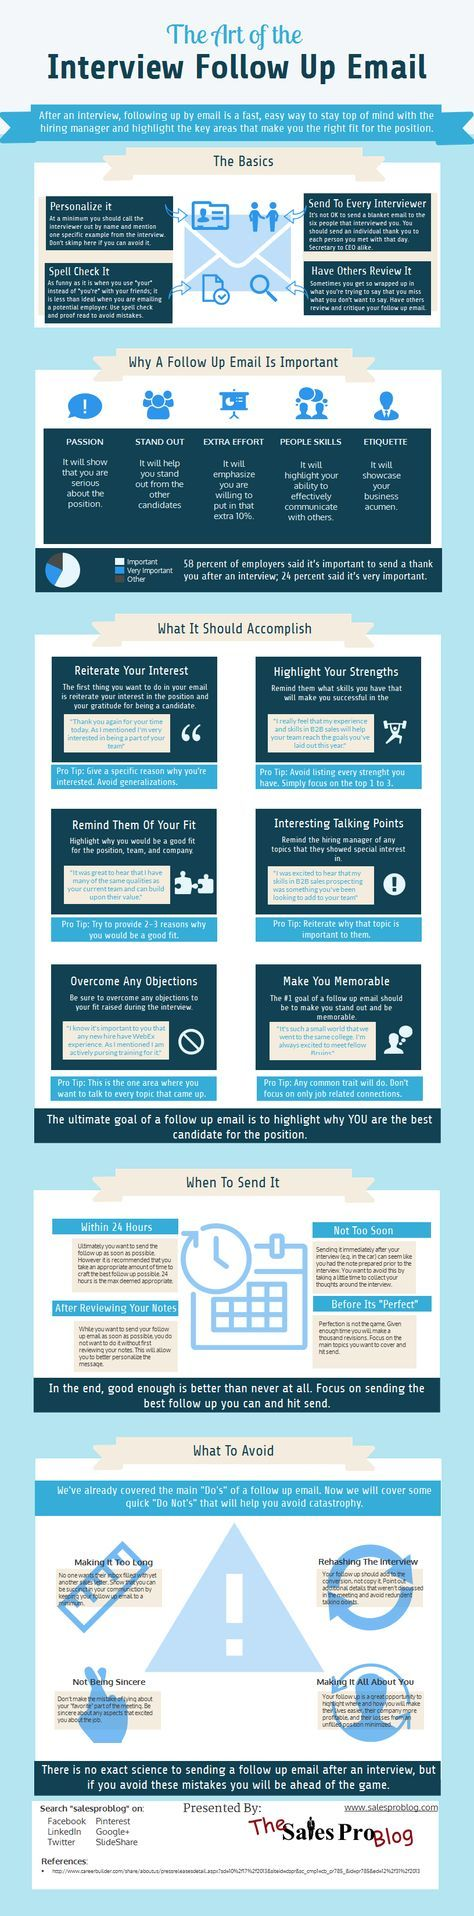 The Art Of The Interview Follow Up Email Infographic - Interview follow up emails are an often overlooked aspect of the job interview. And while there may not be an exact science to sending a follow up there are a few basic aspects you should know before your next interview. Find out more at http://www.salesproblog.com/interview-follow-up-email/